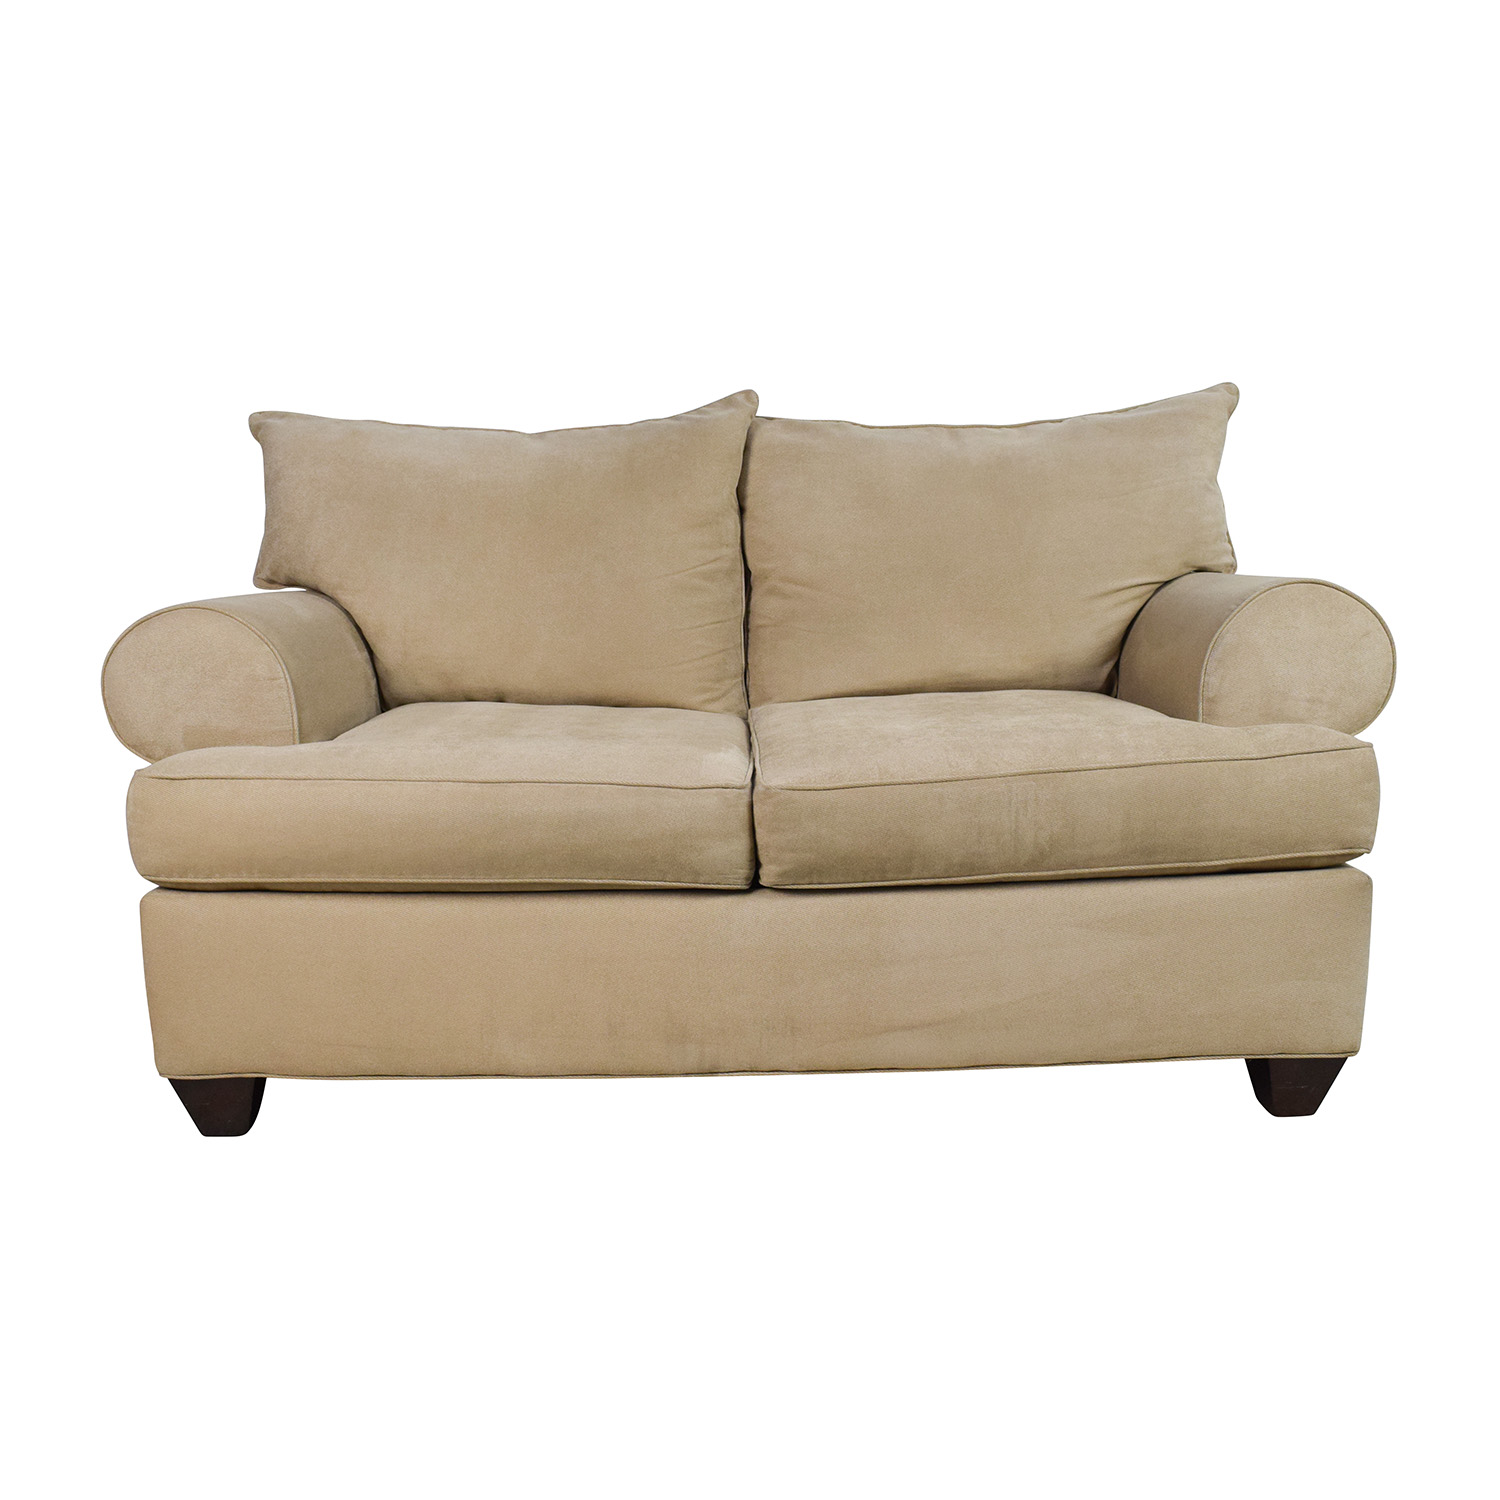 raymour and flanigan sofas raymour and flanigan sofa marsala traditional leather 30368